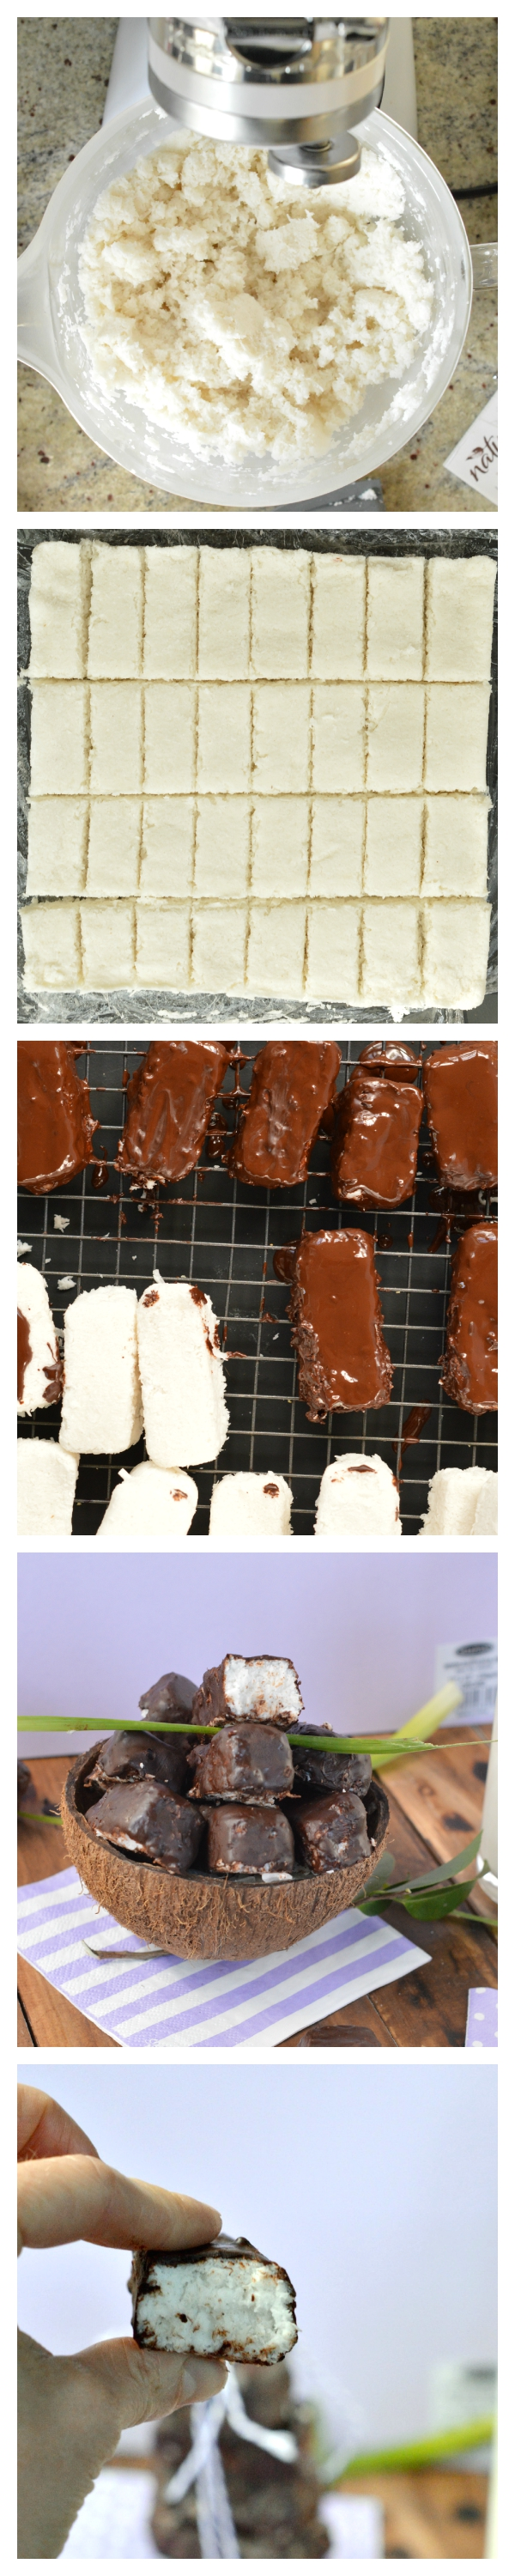 Sugar free bounty bars #bounty #recipe #candybars #vegan #healthy #coconut